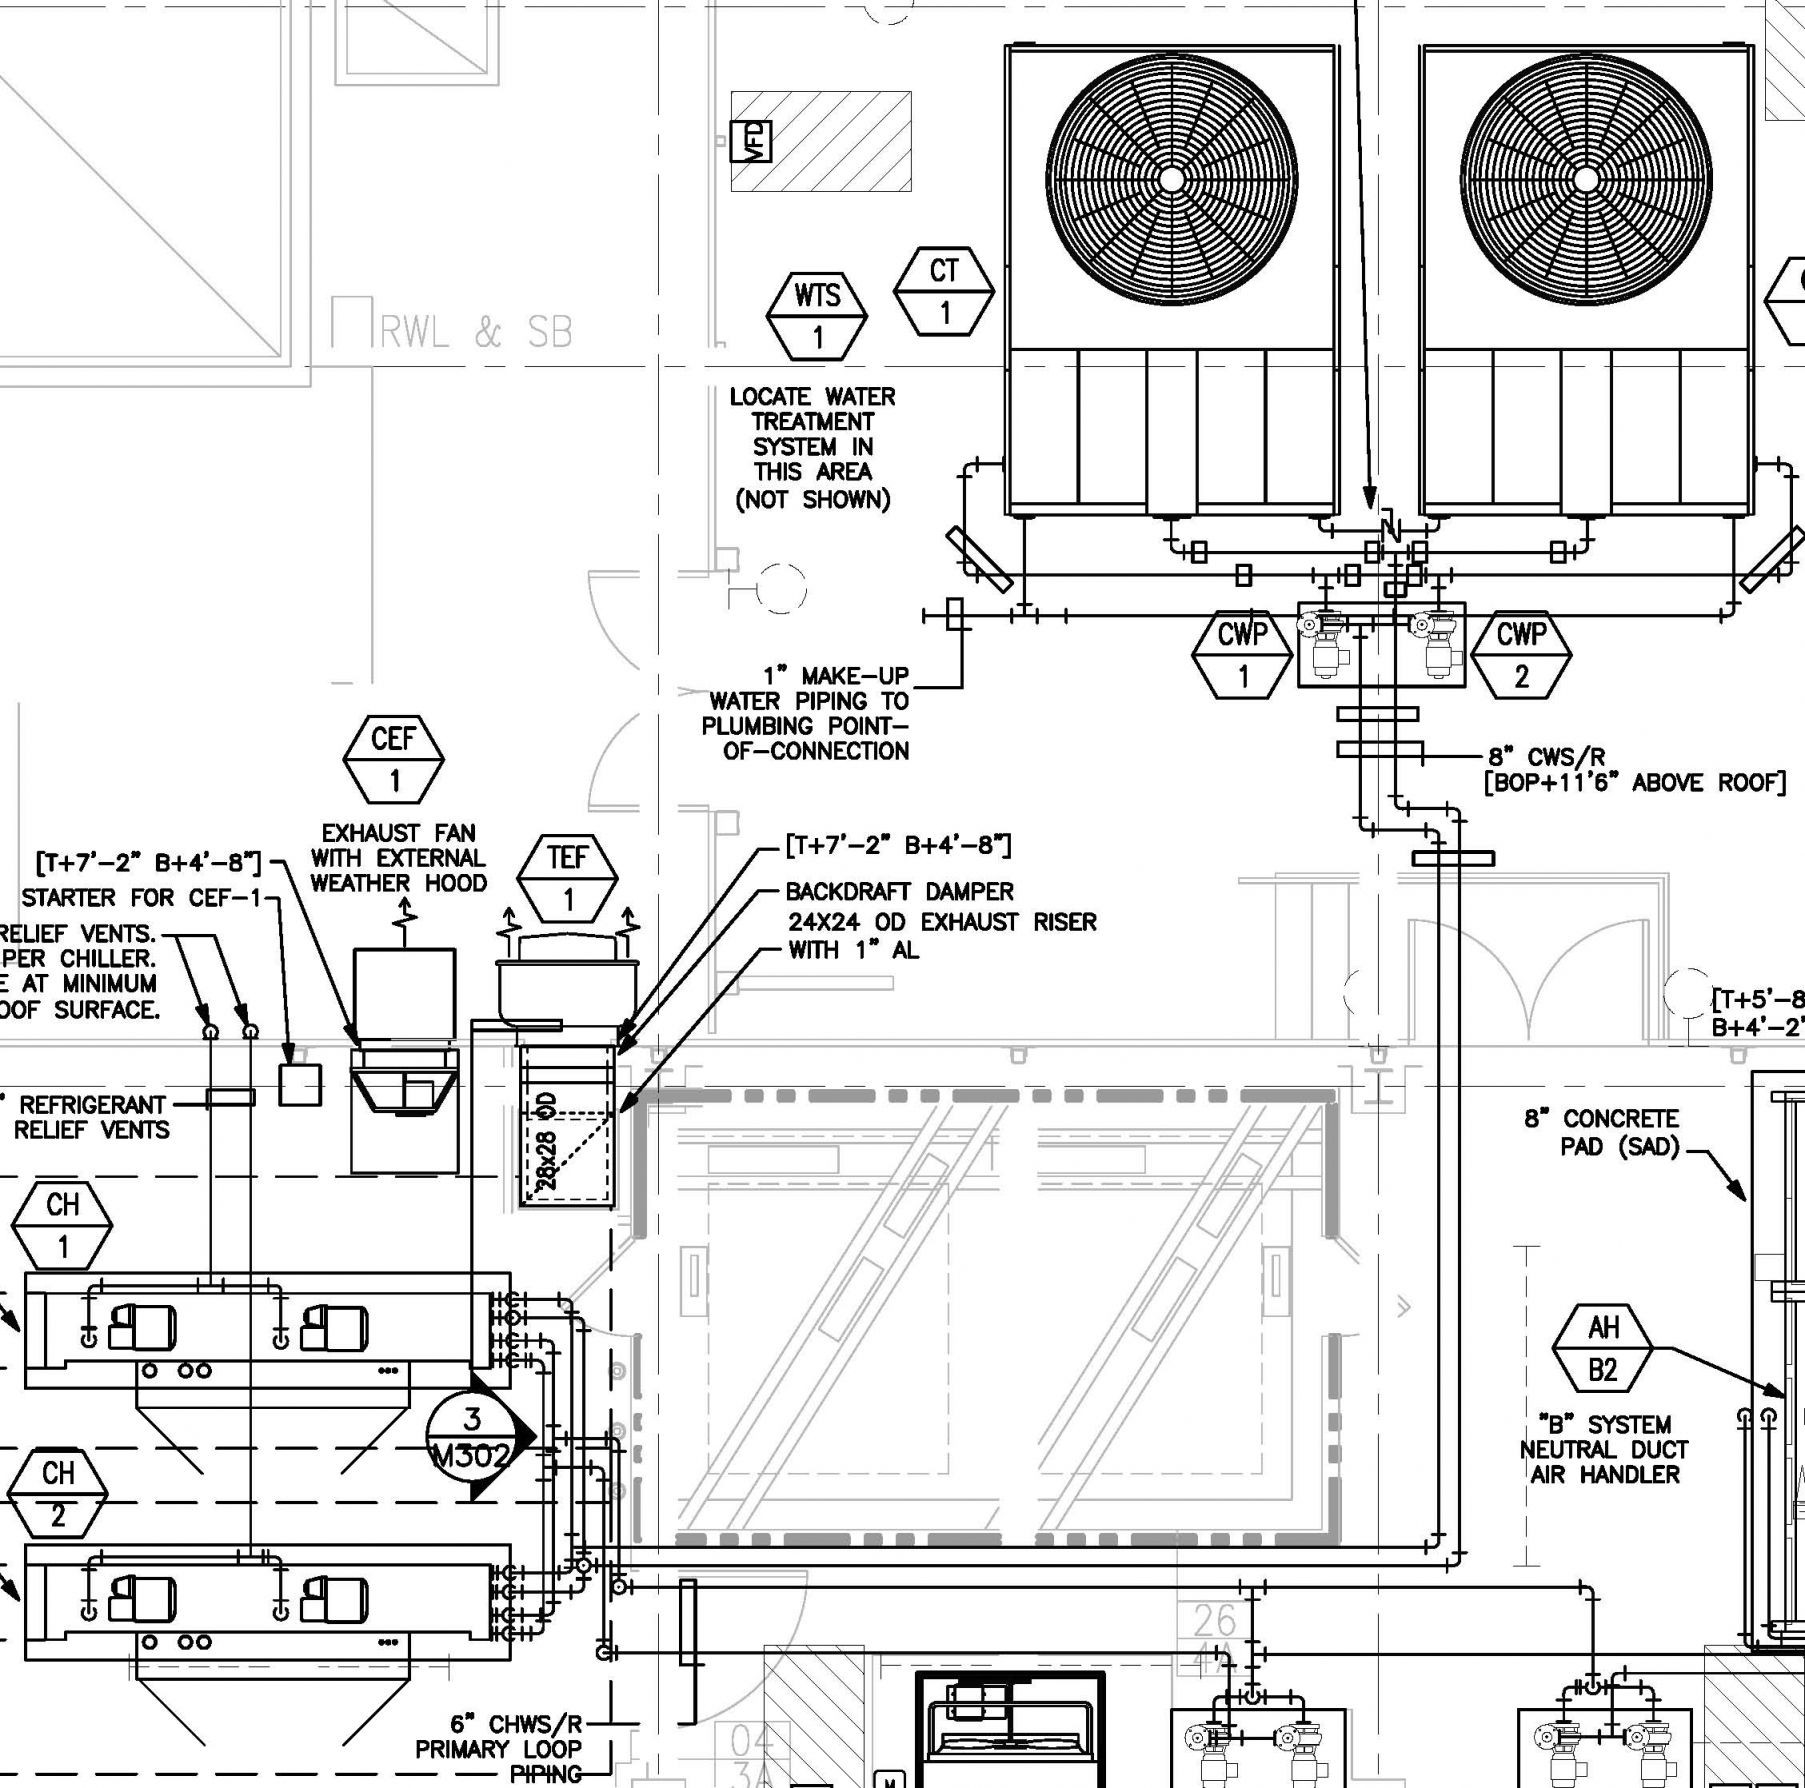 Gas Pump Diagram Well Known Water Pump Installation Diagram Rd03 – Documentaries for Of Gas Pump Diagram Gas Furnace Wiring Diagram Valid Best Suburban Gas Furnace Wiring